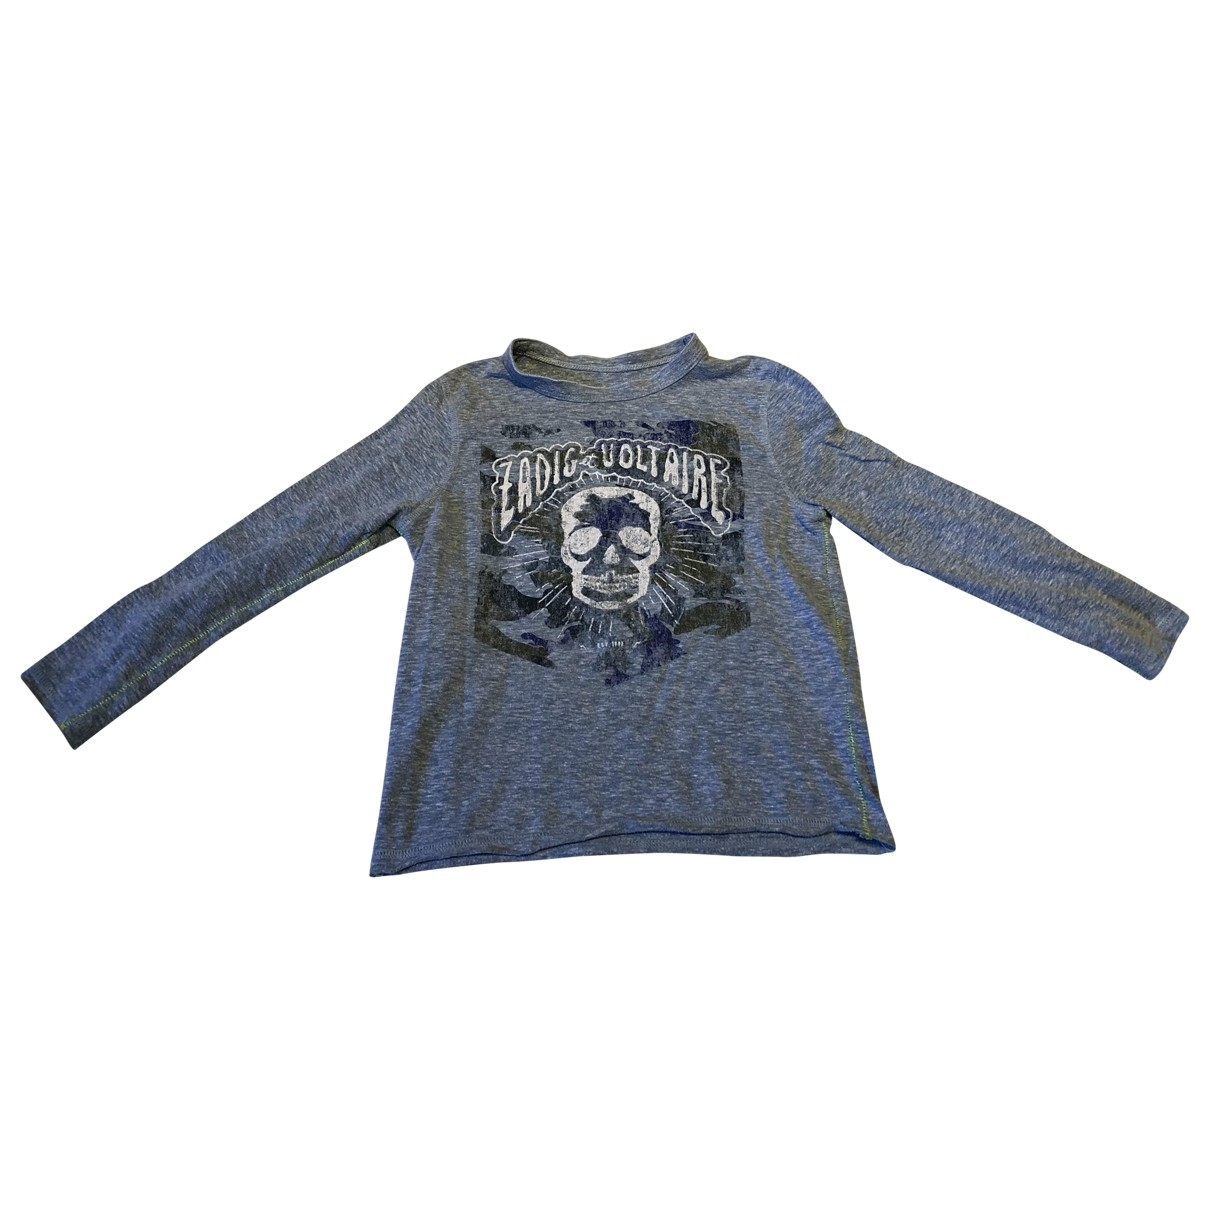 Zadig & Voltaire \N Blue Cotton  top for Kids 5 years - up to 108cm FR